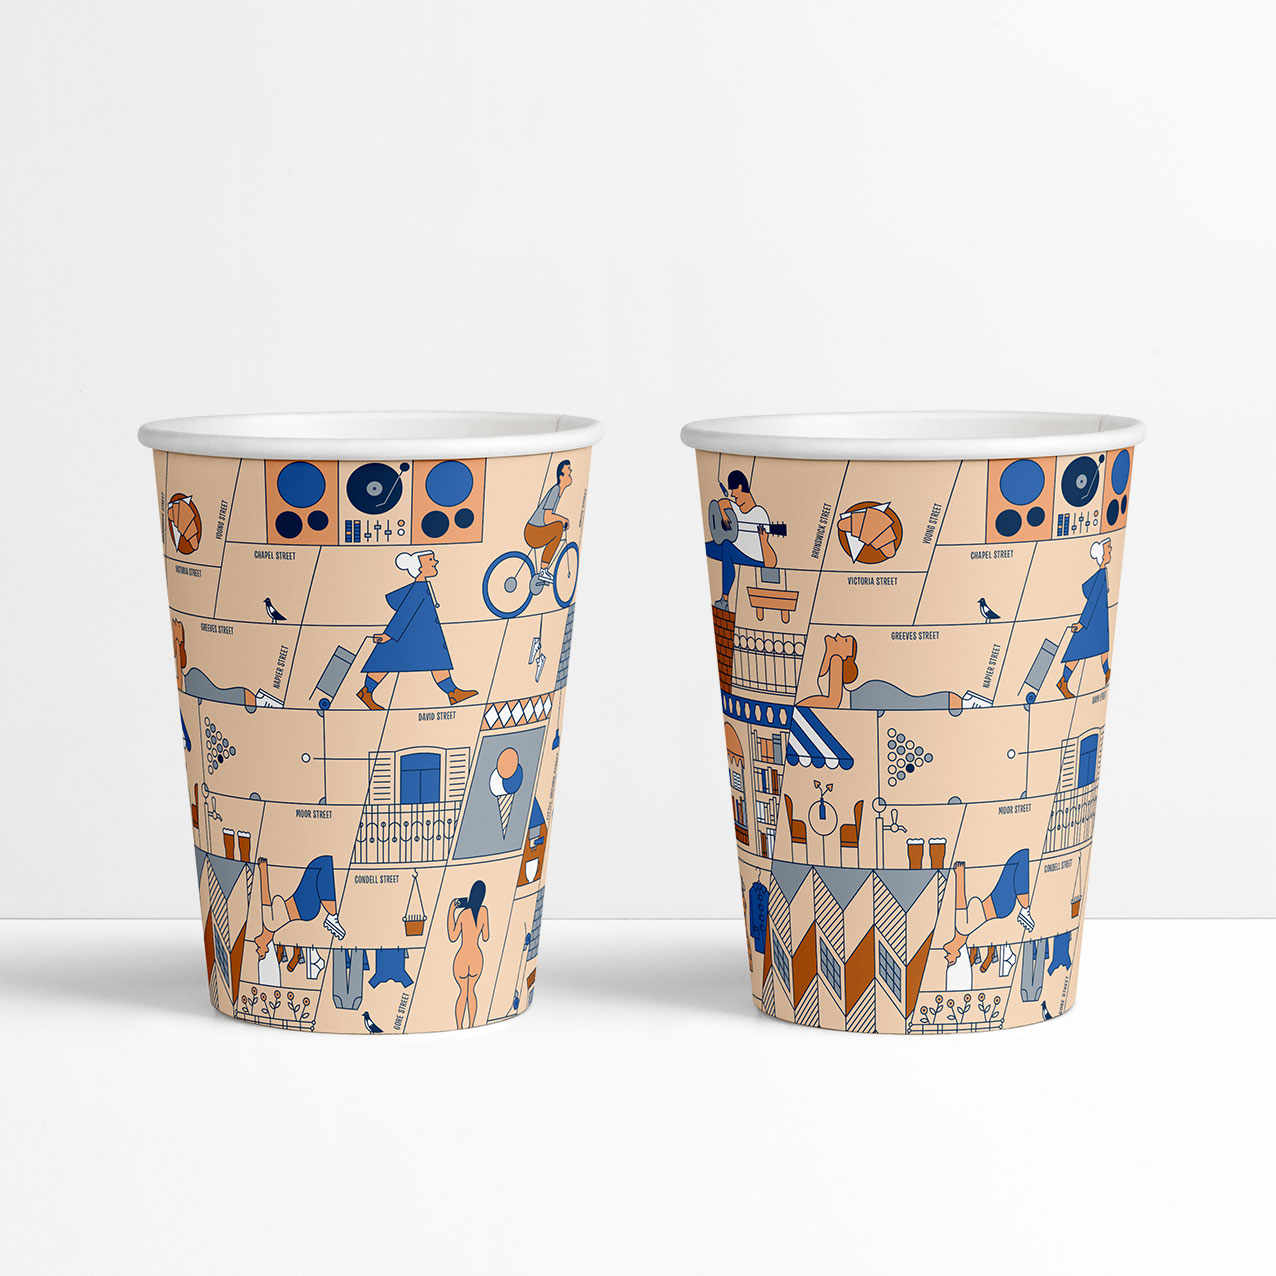 fitzroy_map_cup_web.jpg